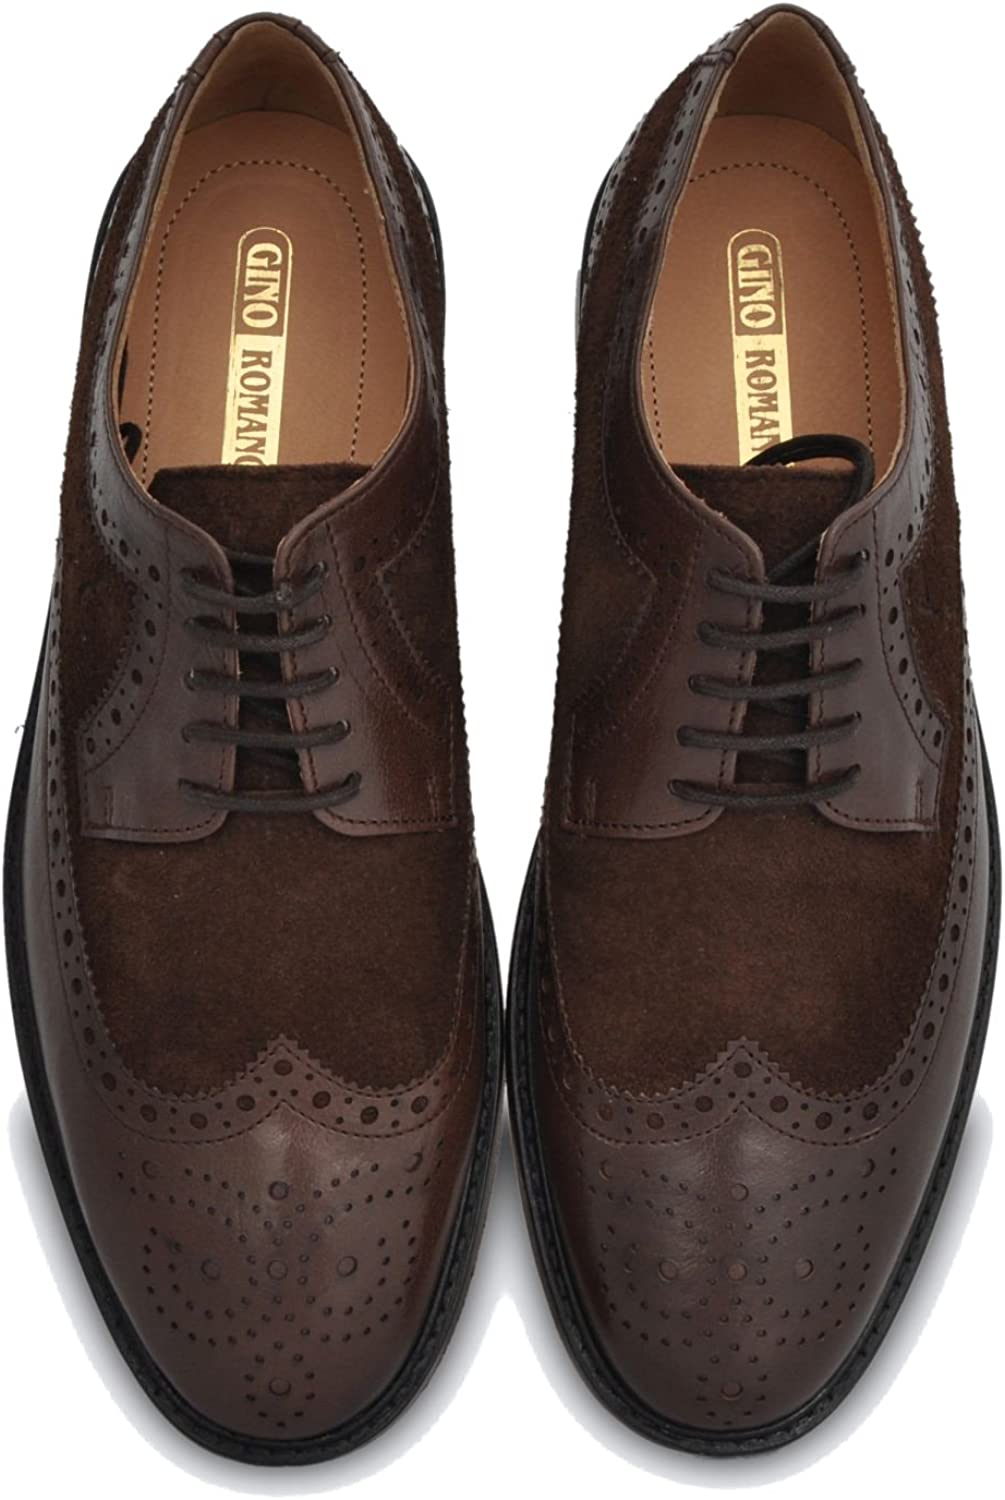 Gino Romano Brogue shoes for Men - Full Grain Smooth Leather and Imported silverinian Leather Sole